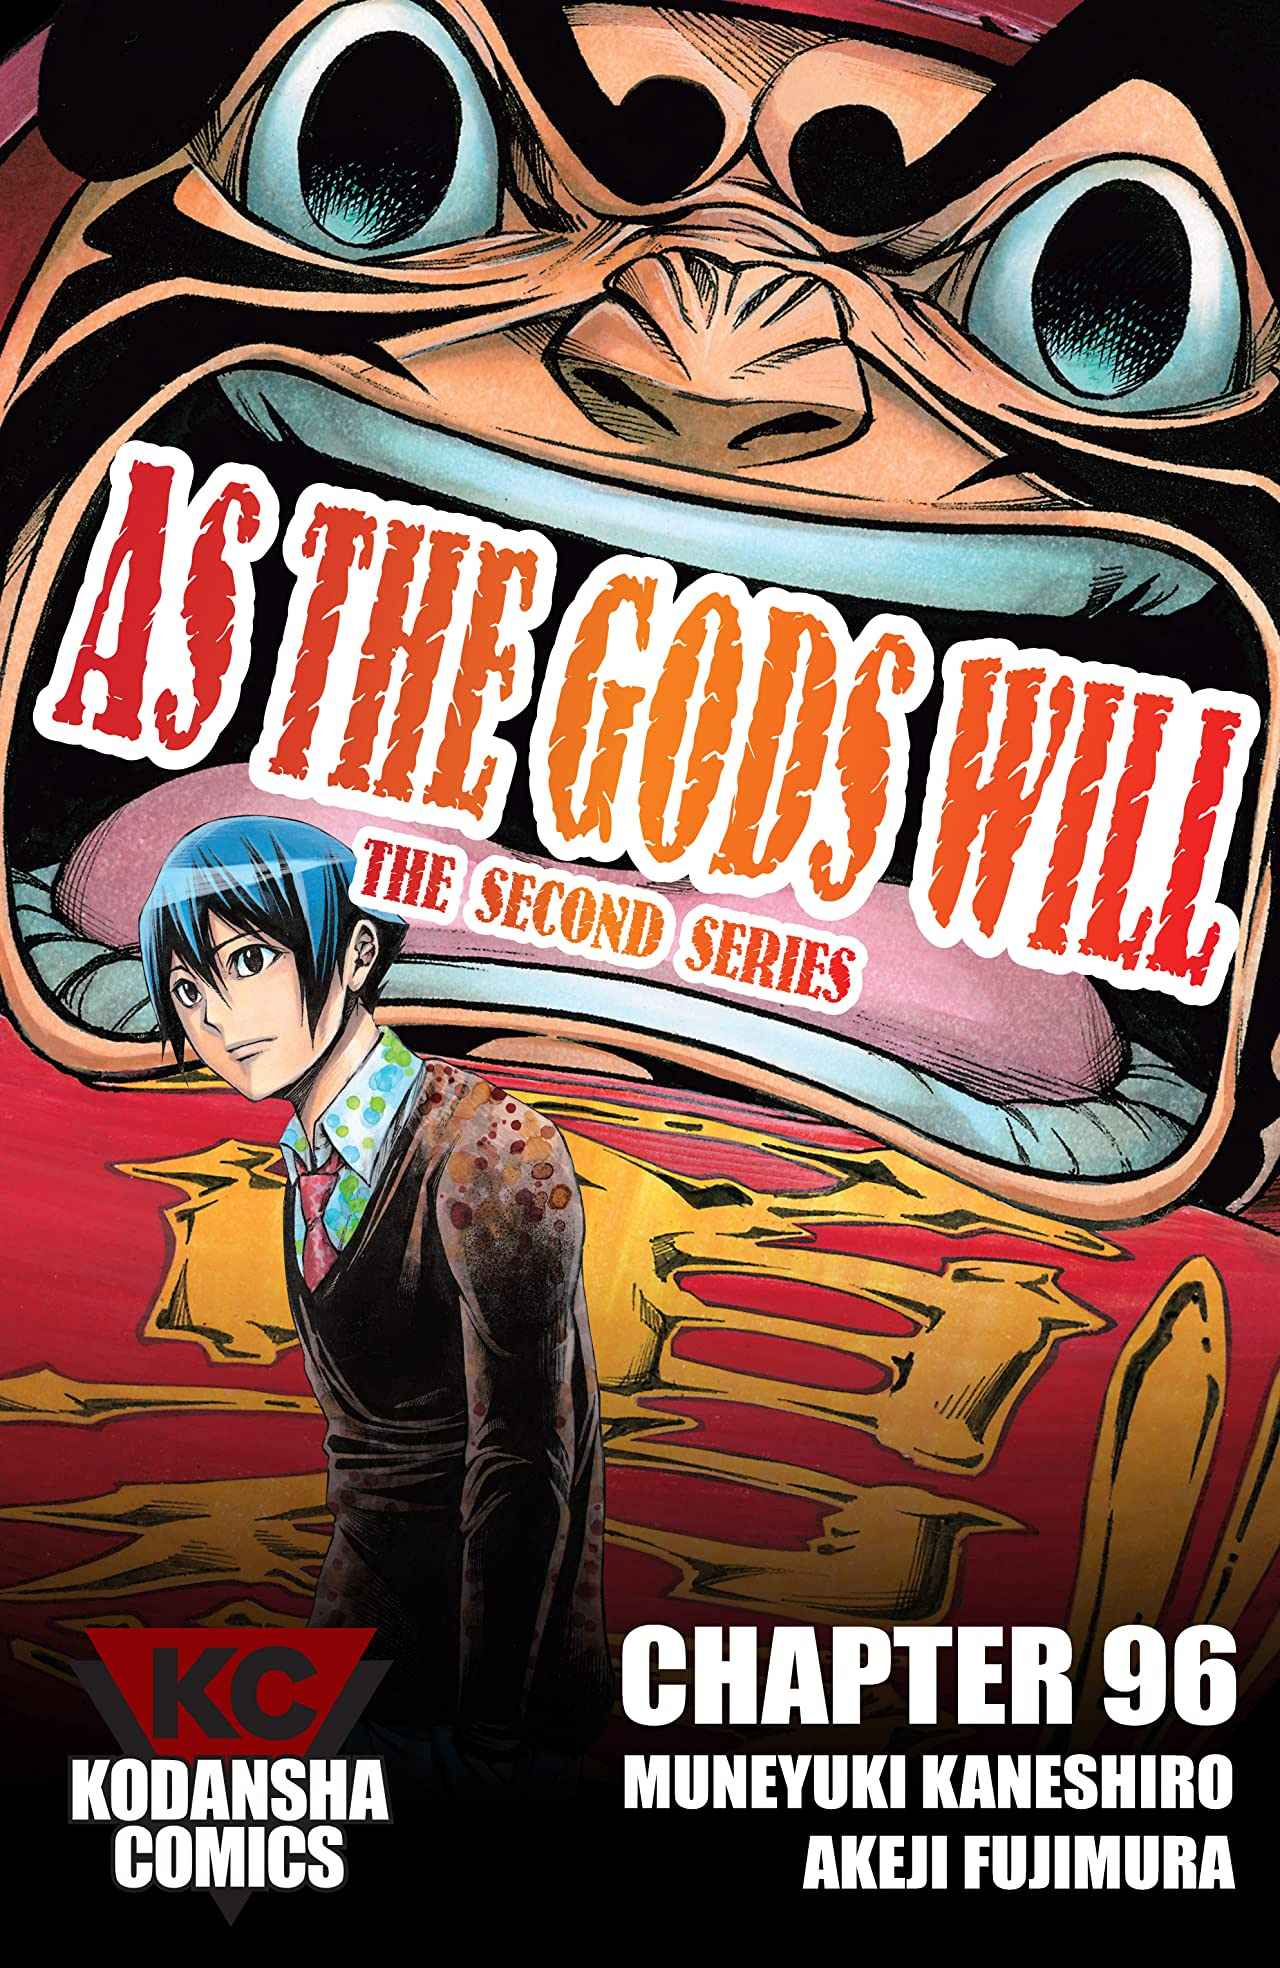 As The Gods Will: The Second Series #96